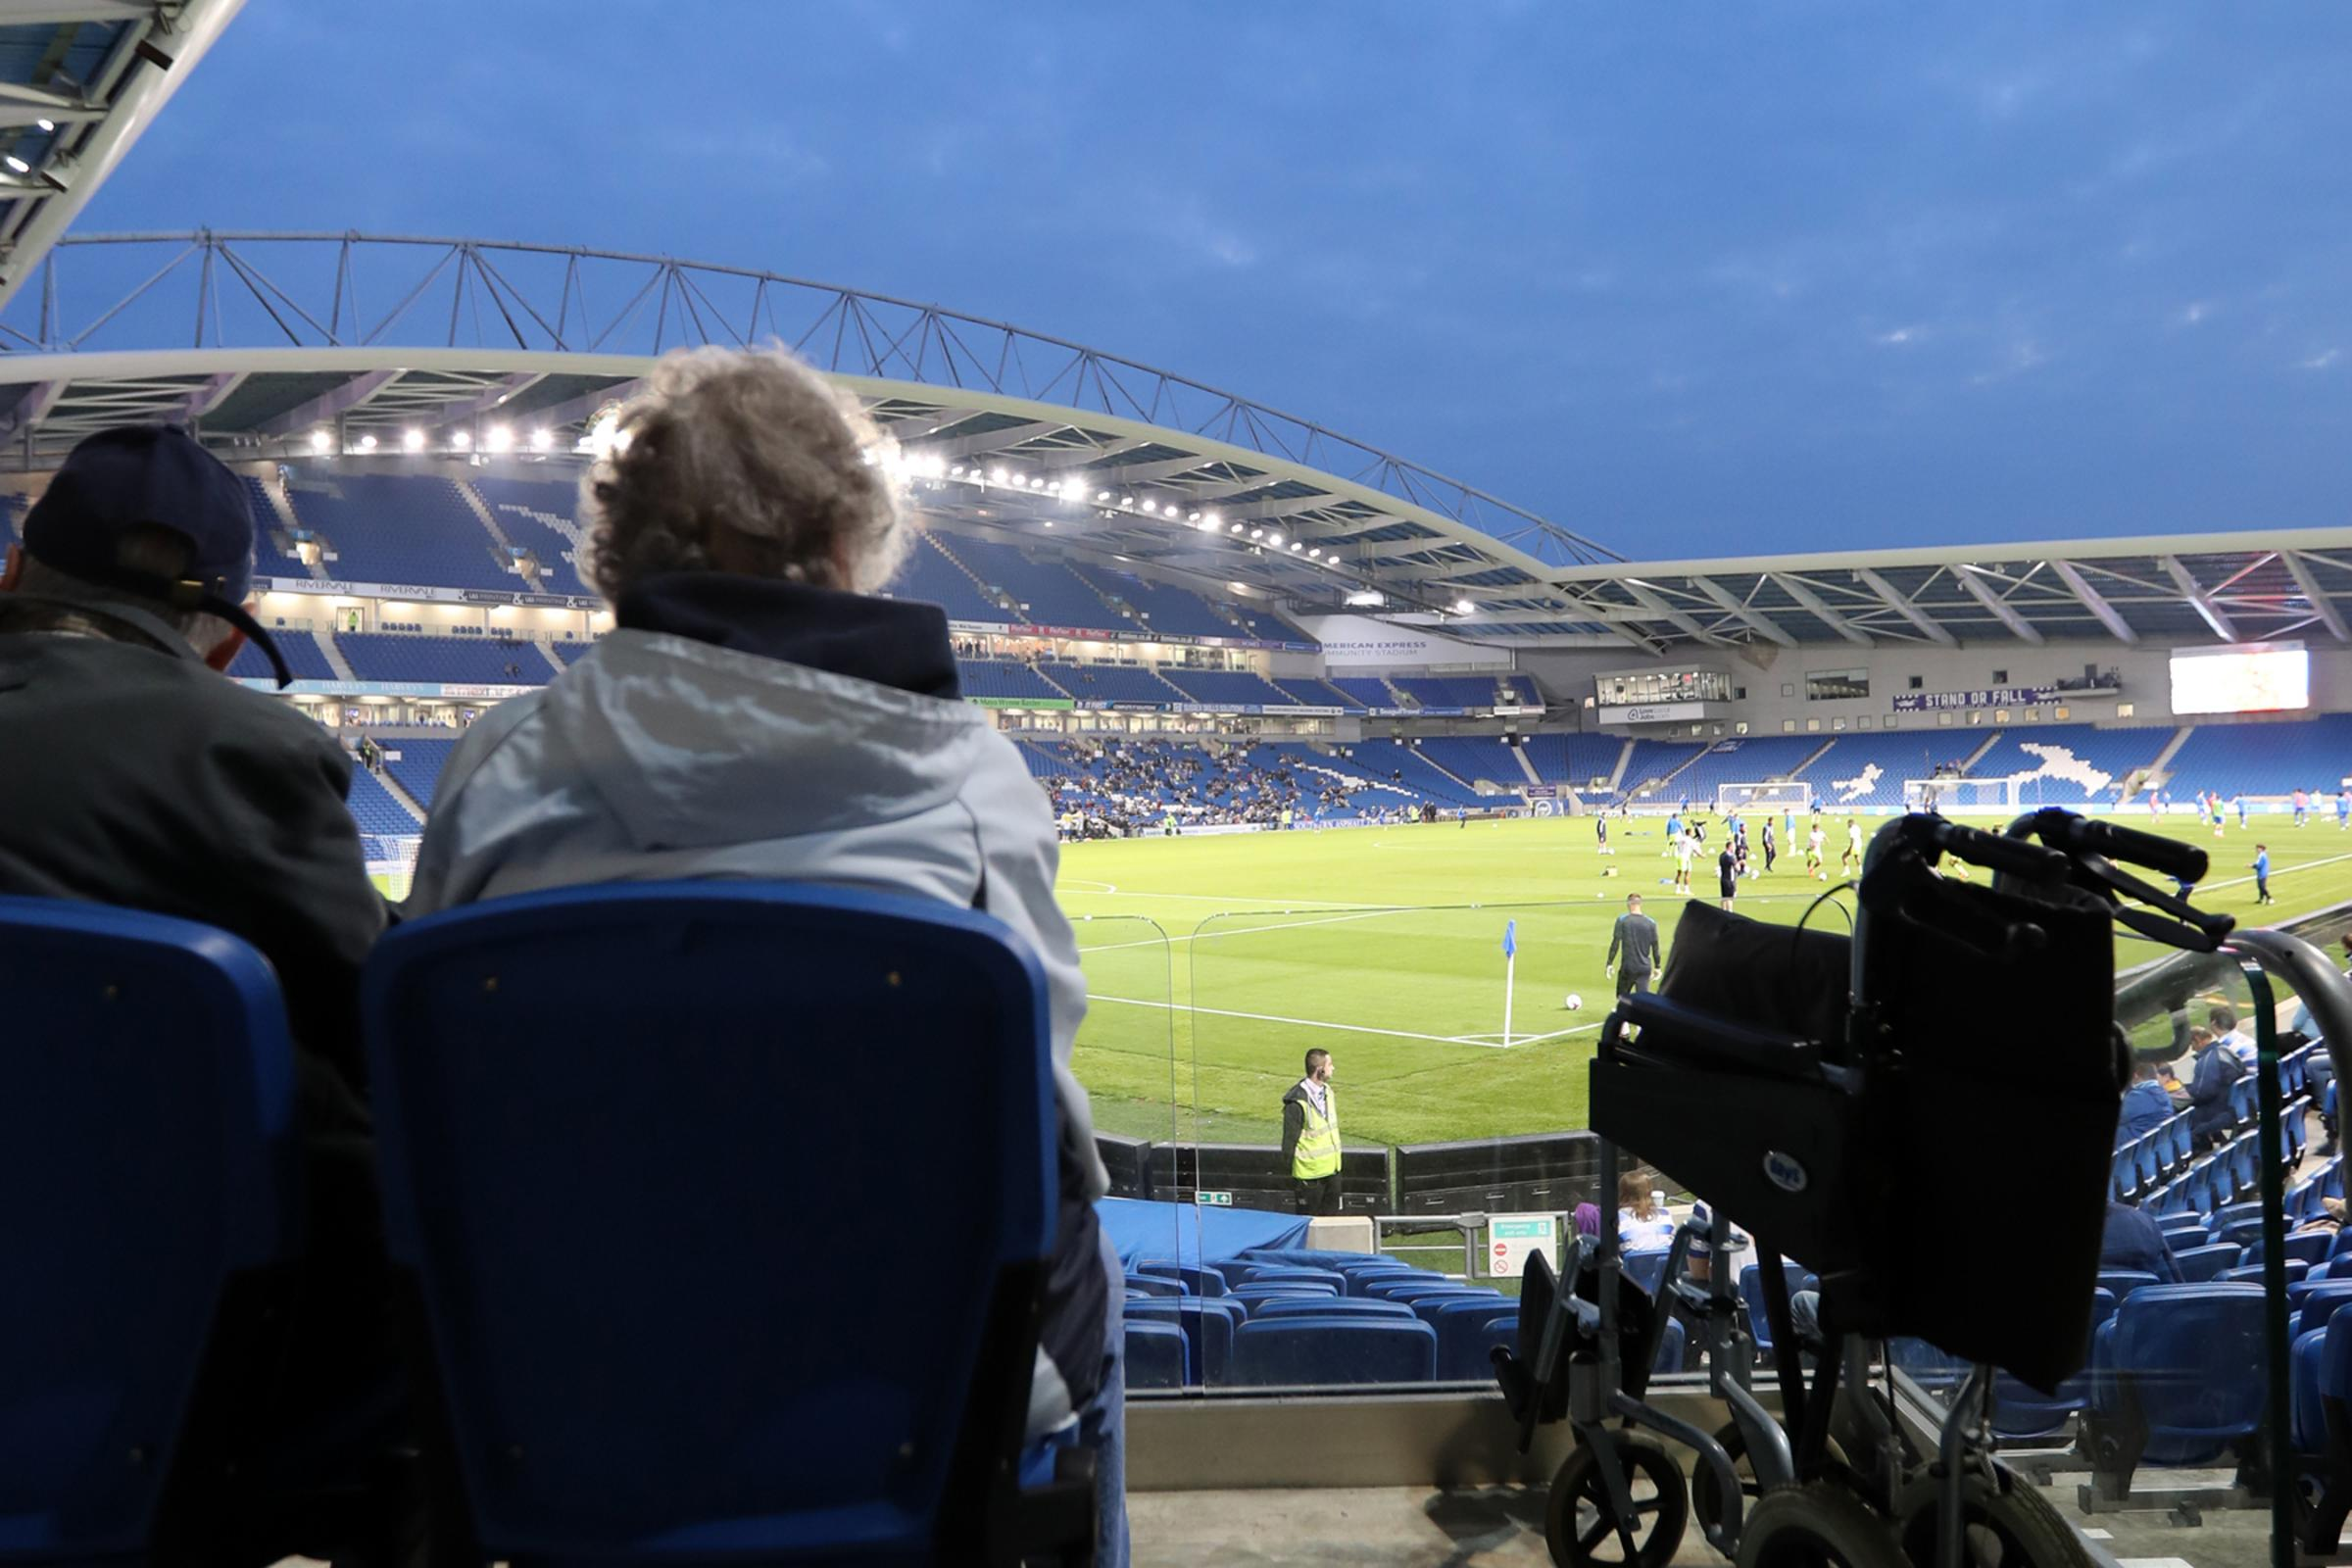 Match action during the EFL Cup first round tie between Brighton and Hove Albion and Reading at the American Express Community Stadium, Falmer on the 20th September 2016..